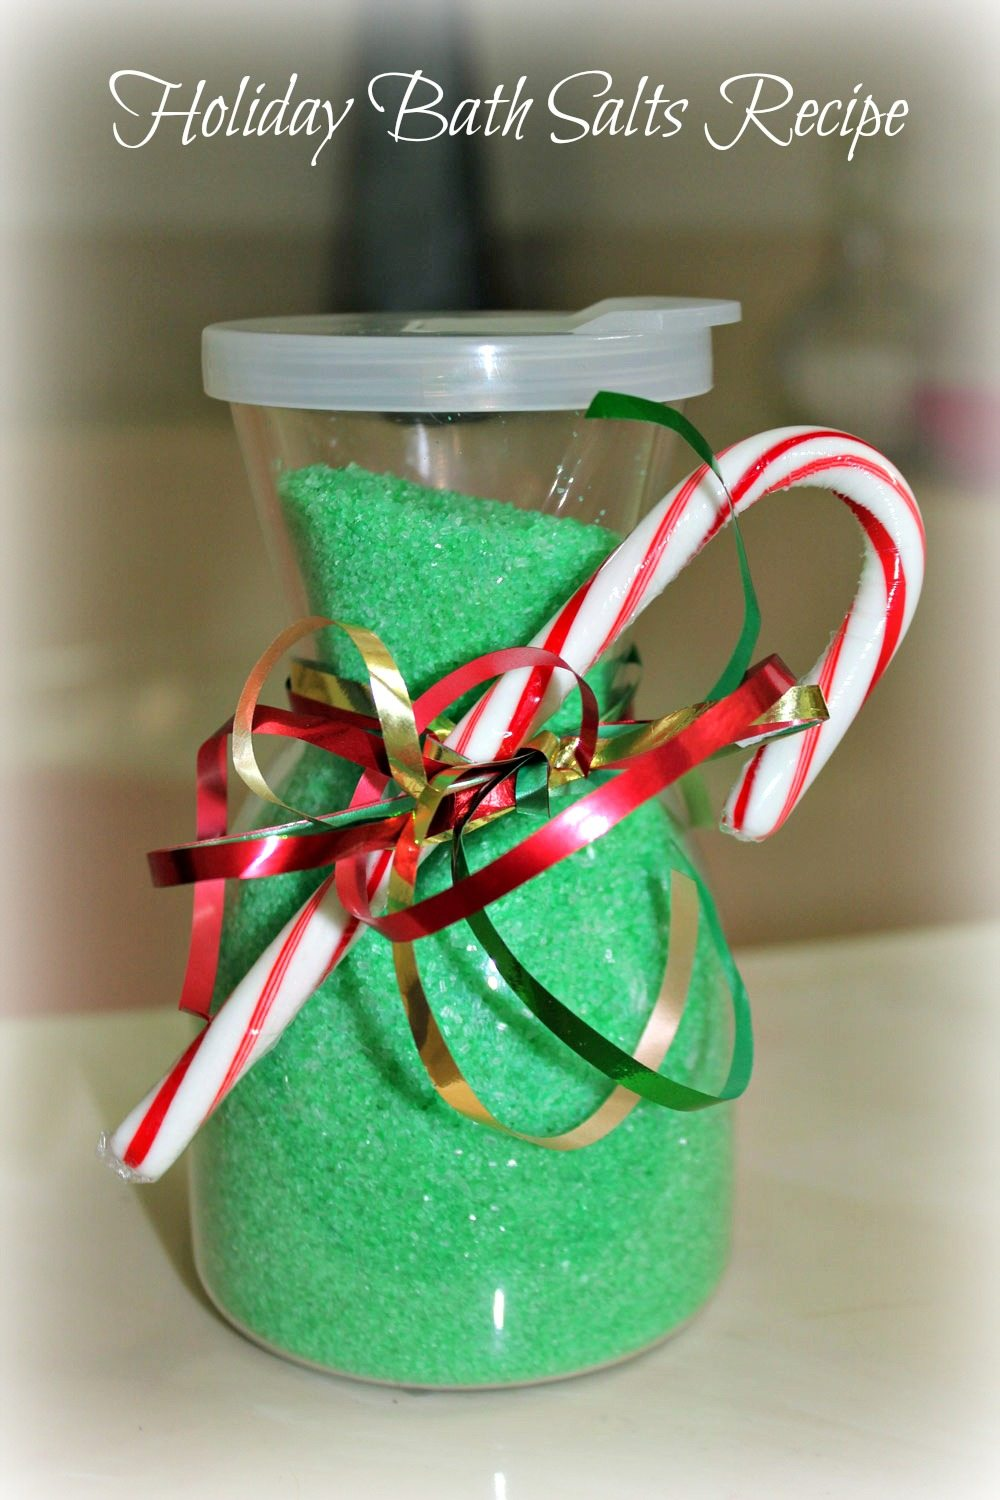 Holiday Bath Salt Recipe